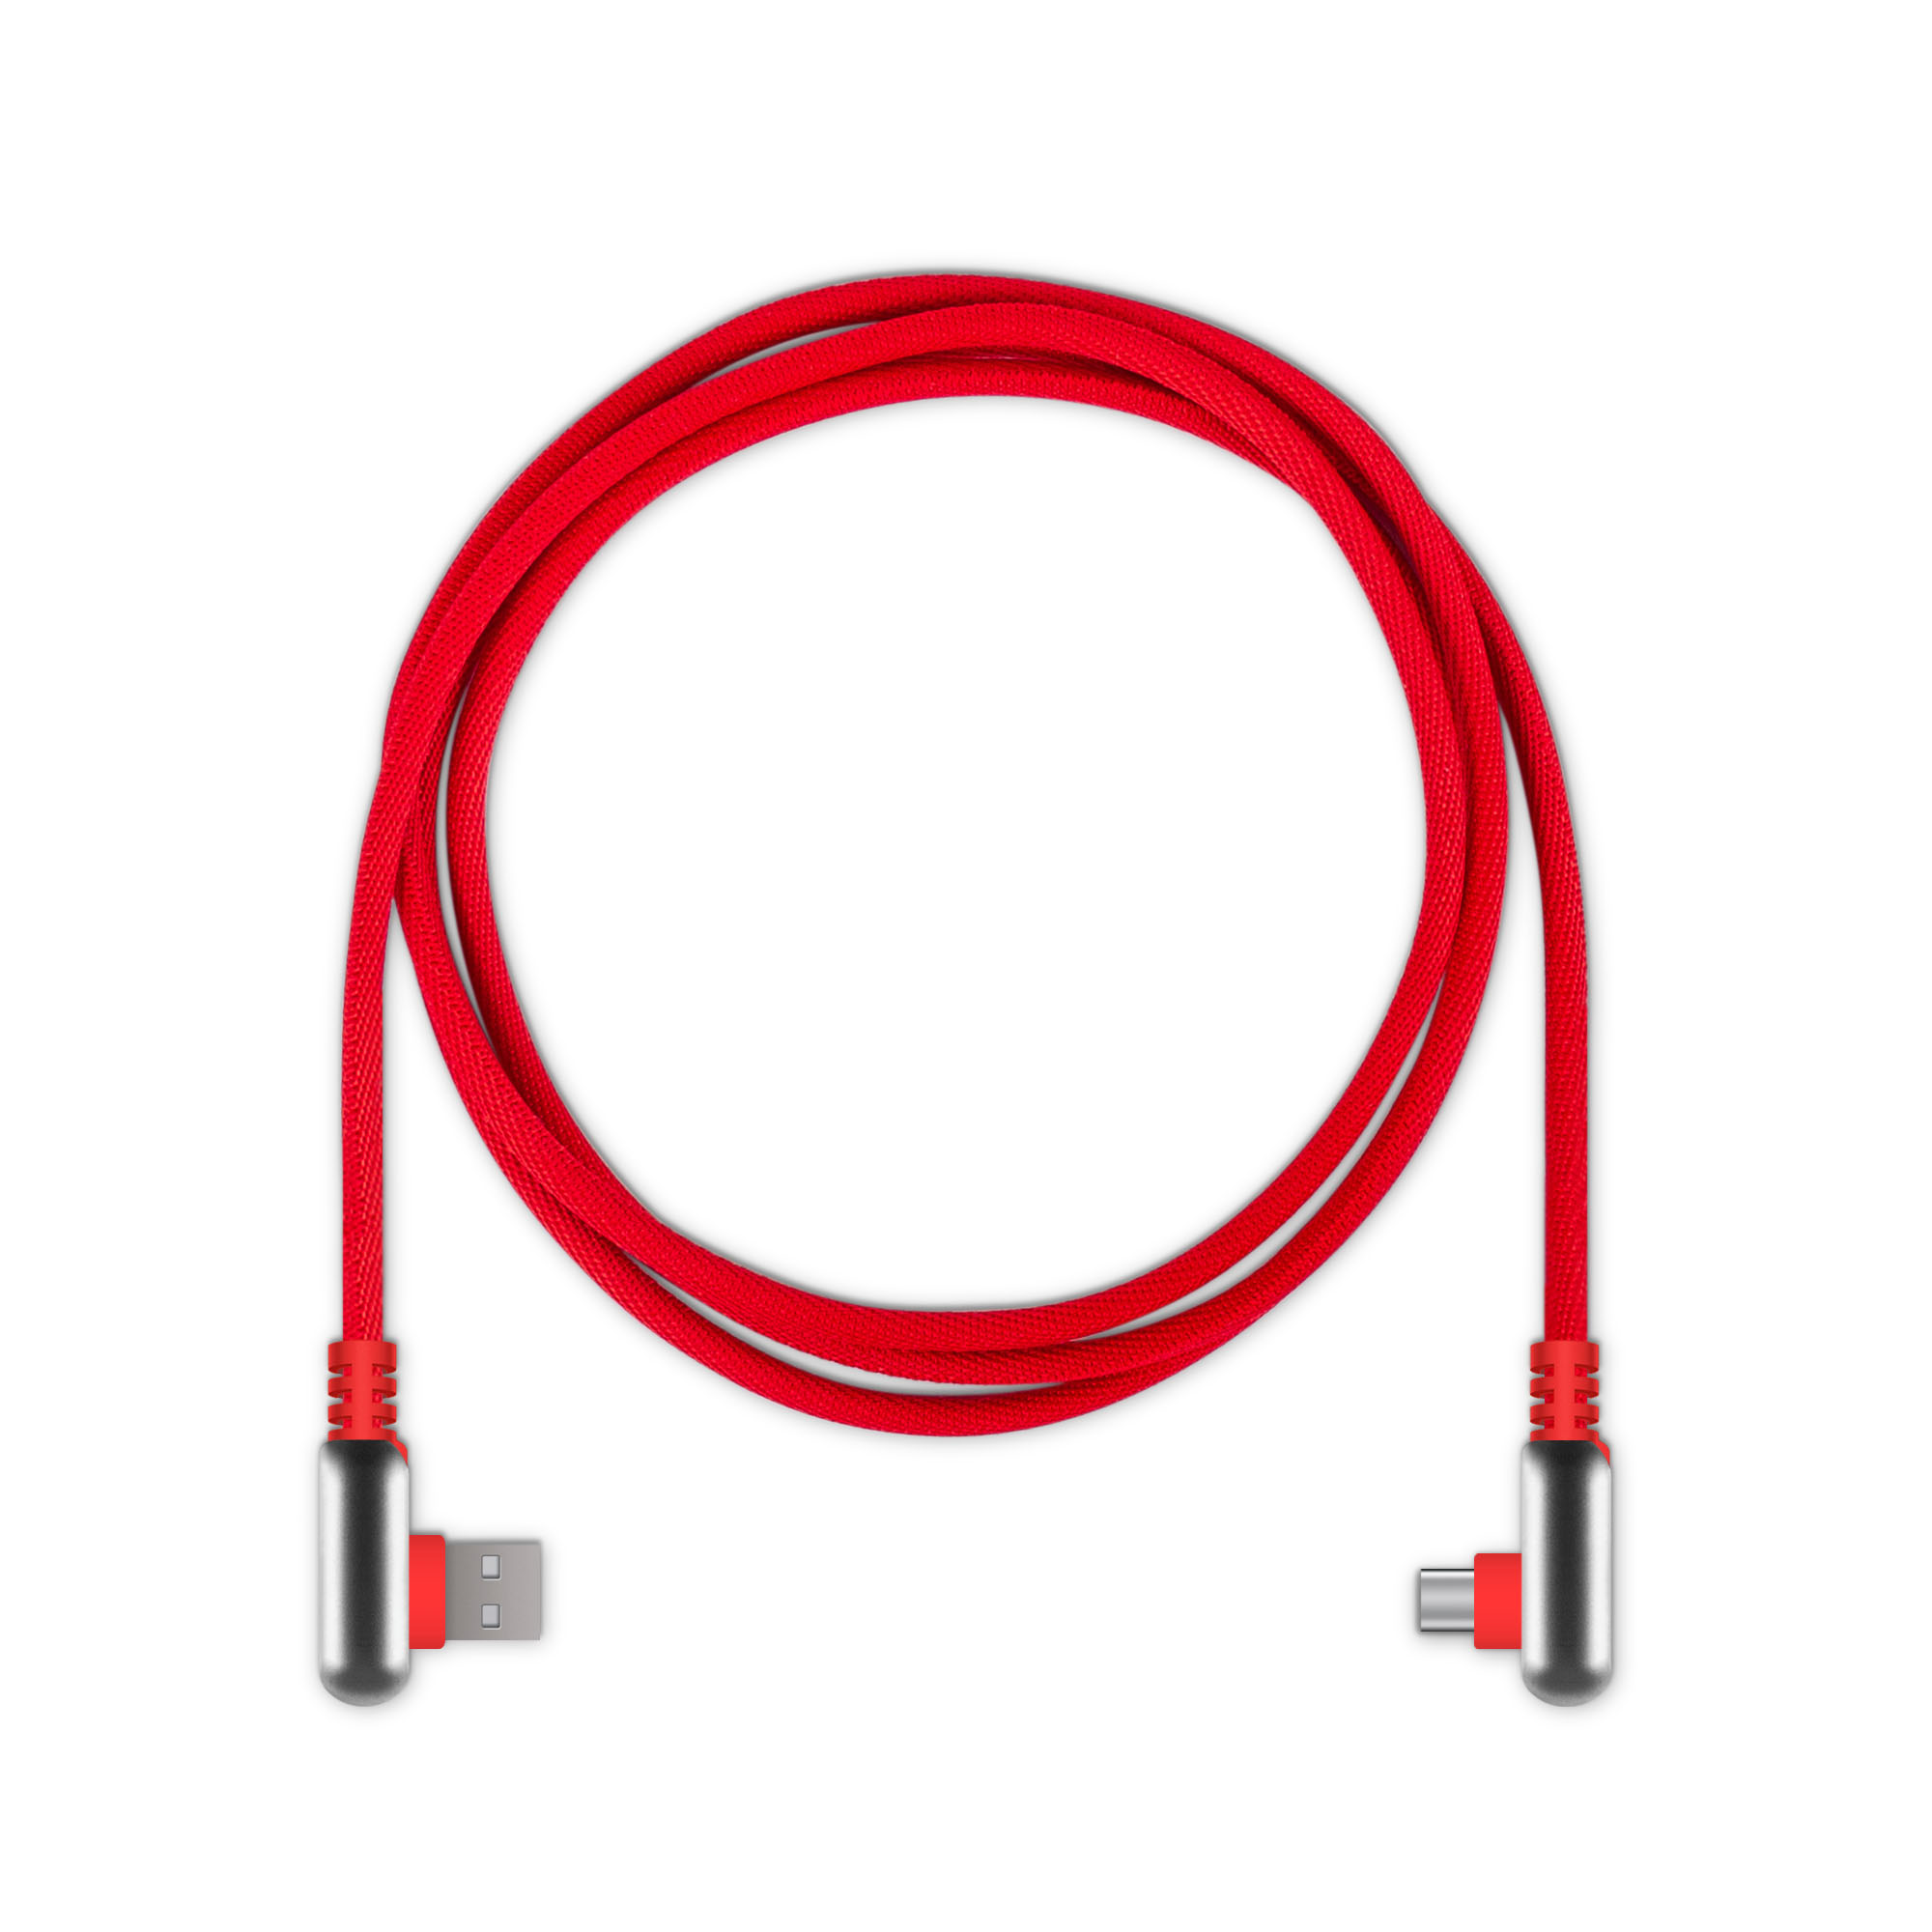 Rombica Digital Electron C Red